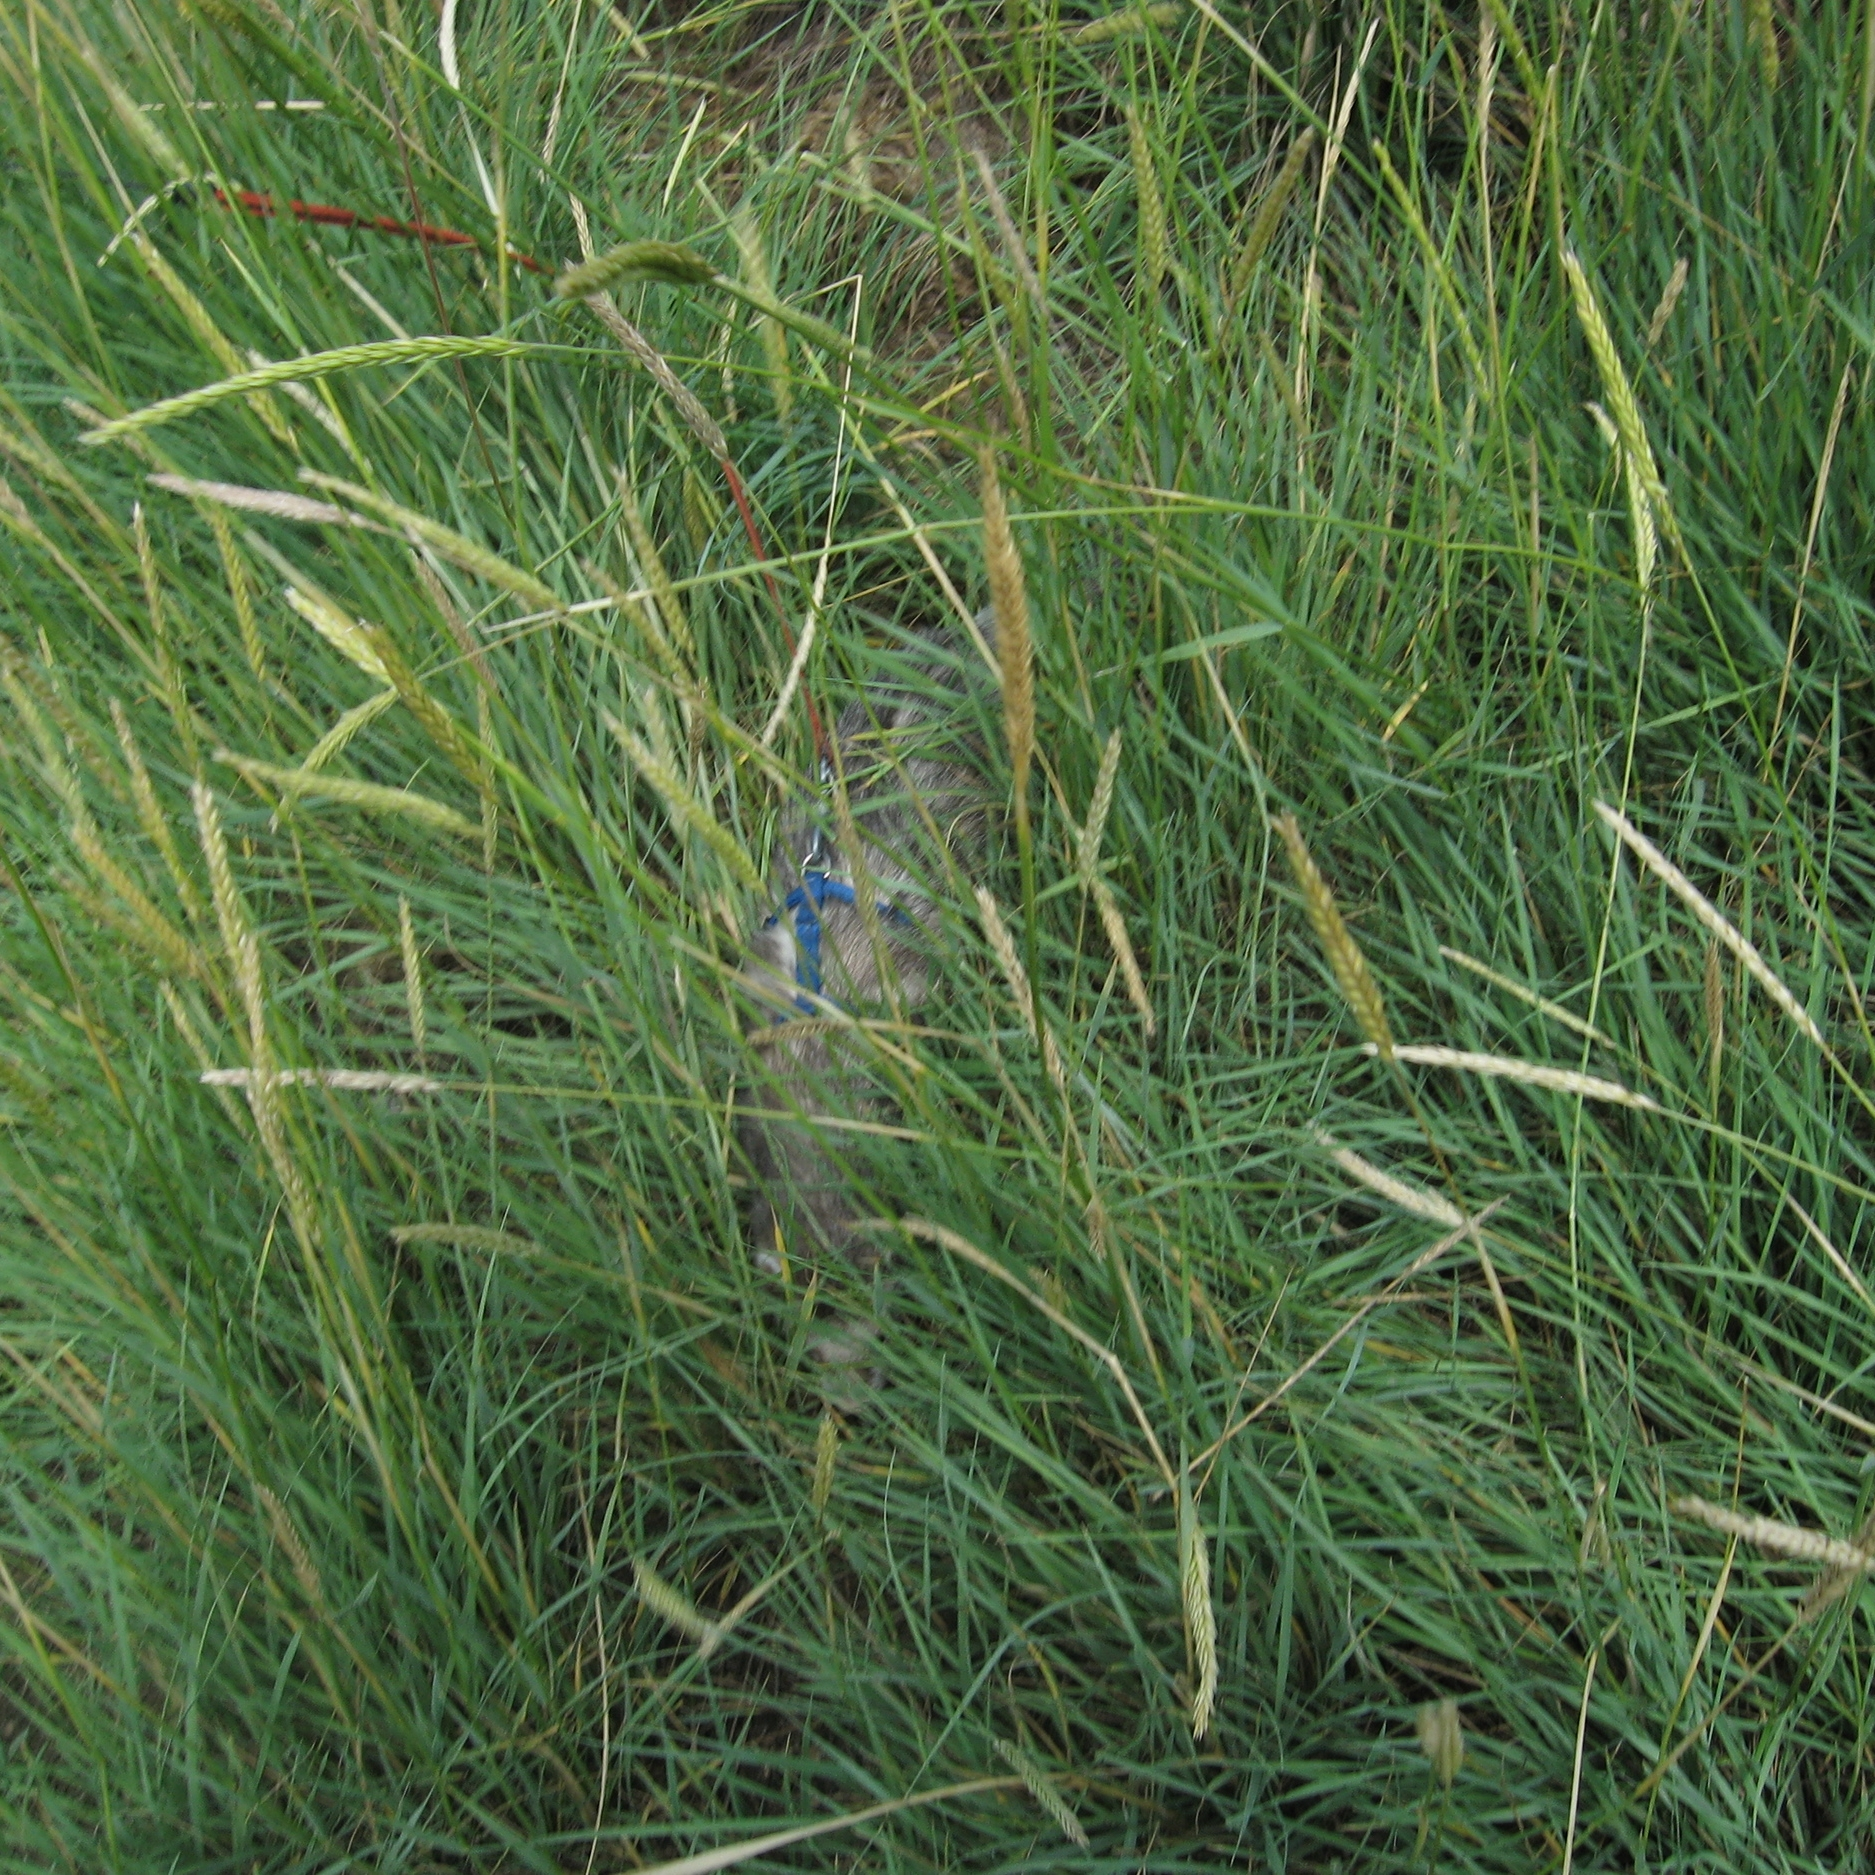 Duke wanders off the path into the tall grass and getshimself lost. He runs into some trouble in this tall grass. You can read more about that in chapter 3.